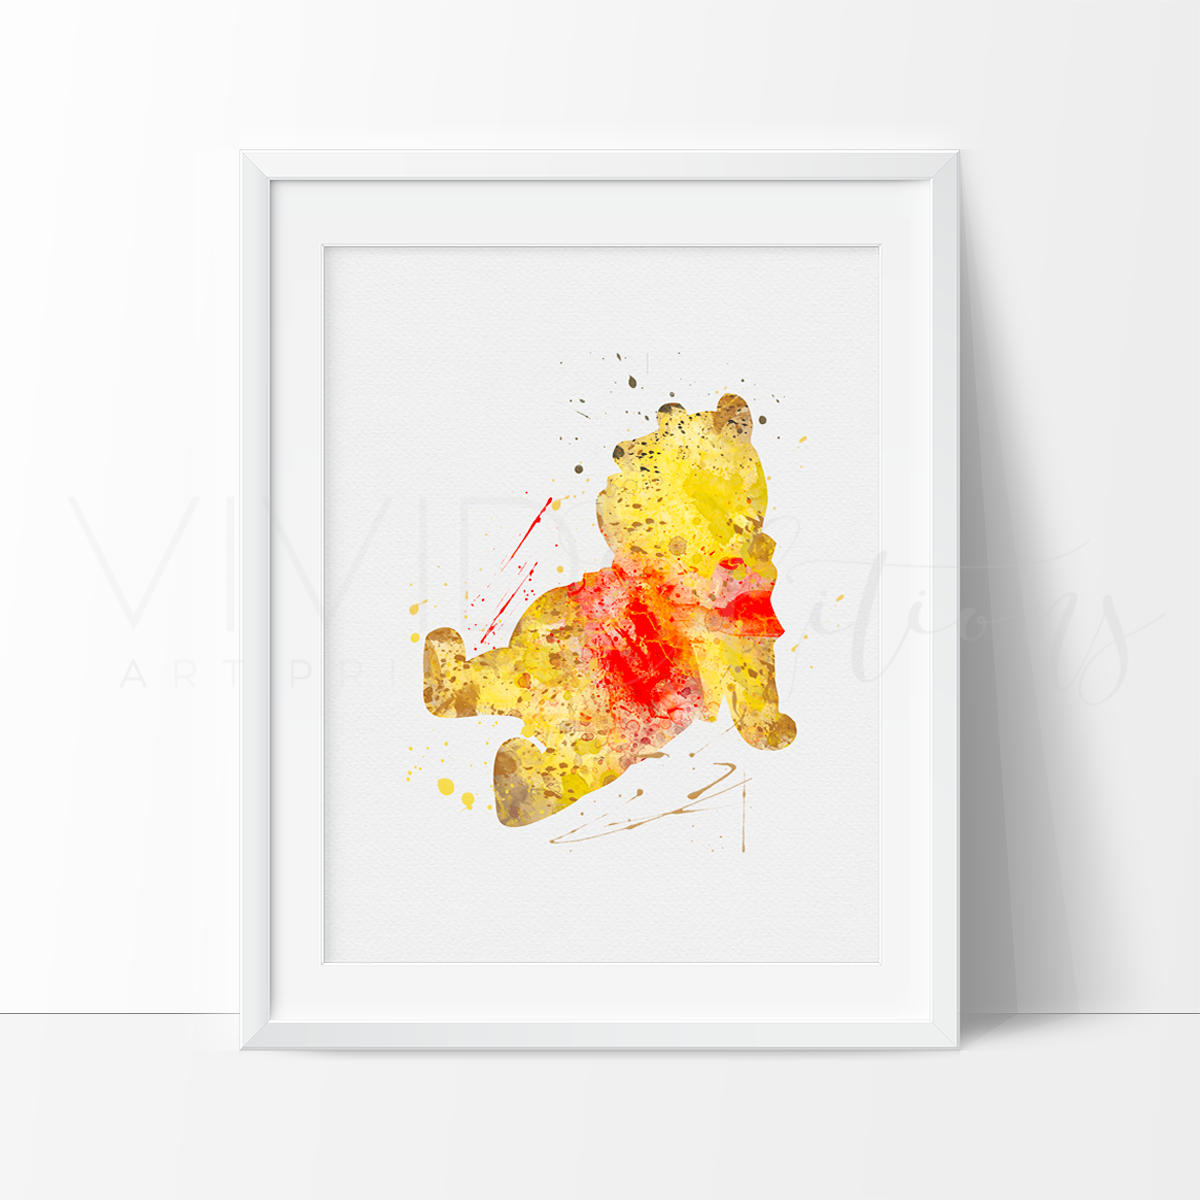 Winnie the Pooh Watercolor Art Print Art Print - VIVIDEDITIONS